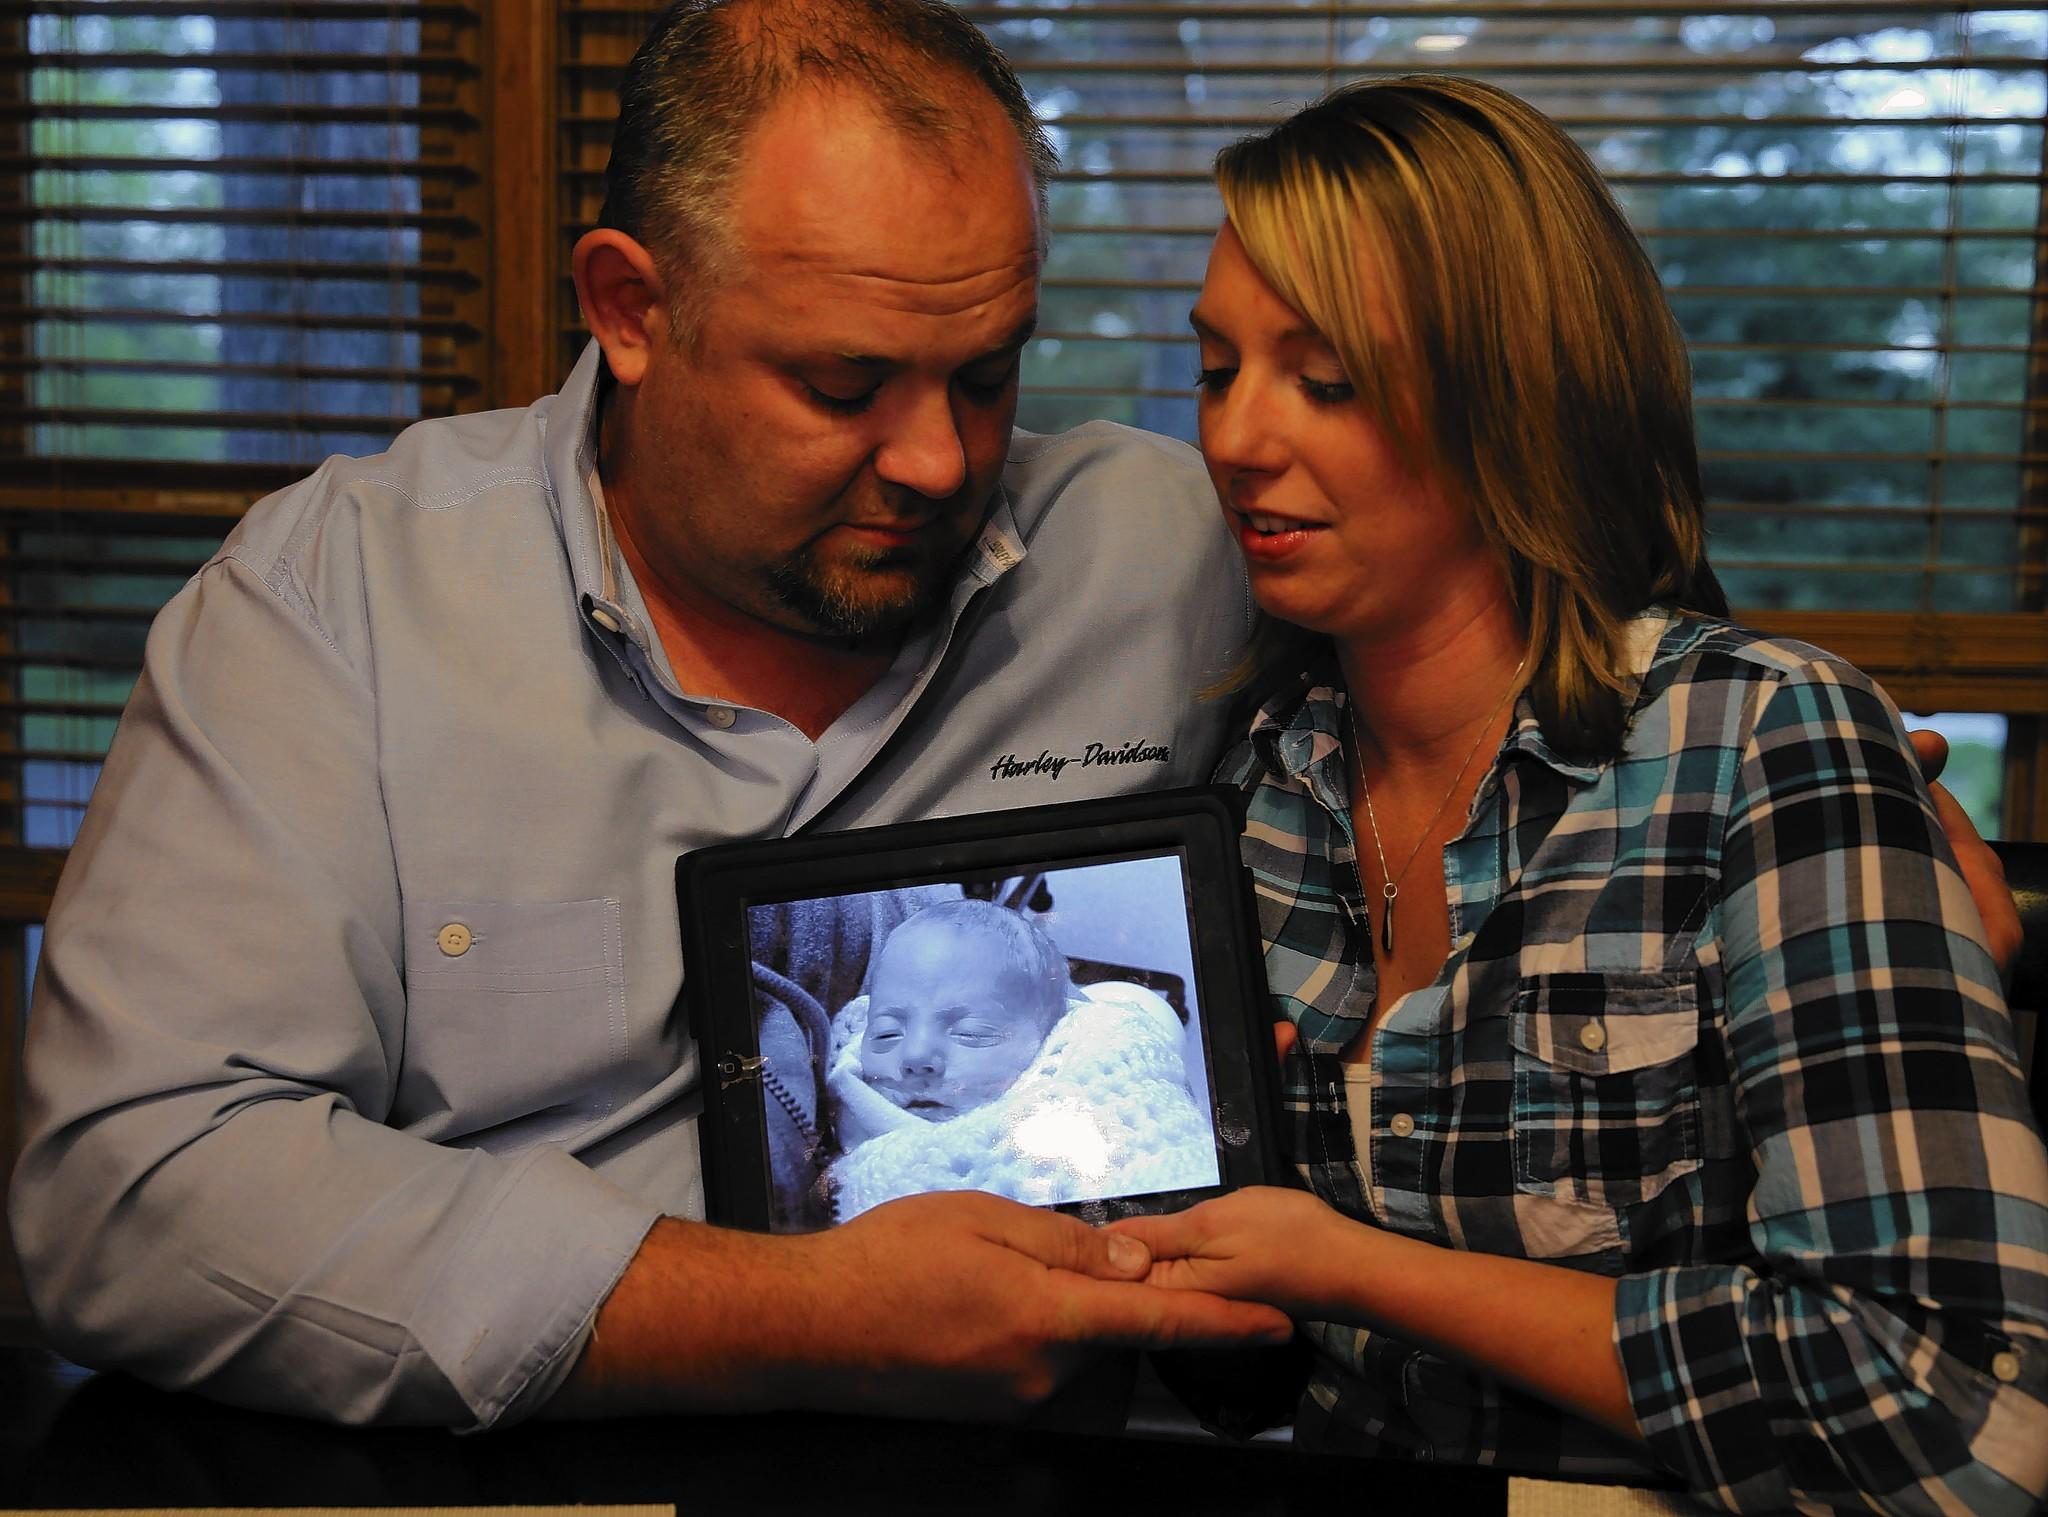 Elizabeth and Phil Peszat hold a photo of their son, Phil, who died last year when he was 7 weeks old. Elizabeth Peszat donated the breast milk that she continued to pump after his death.